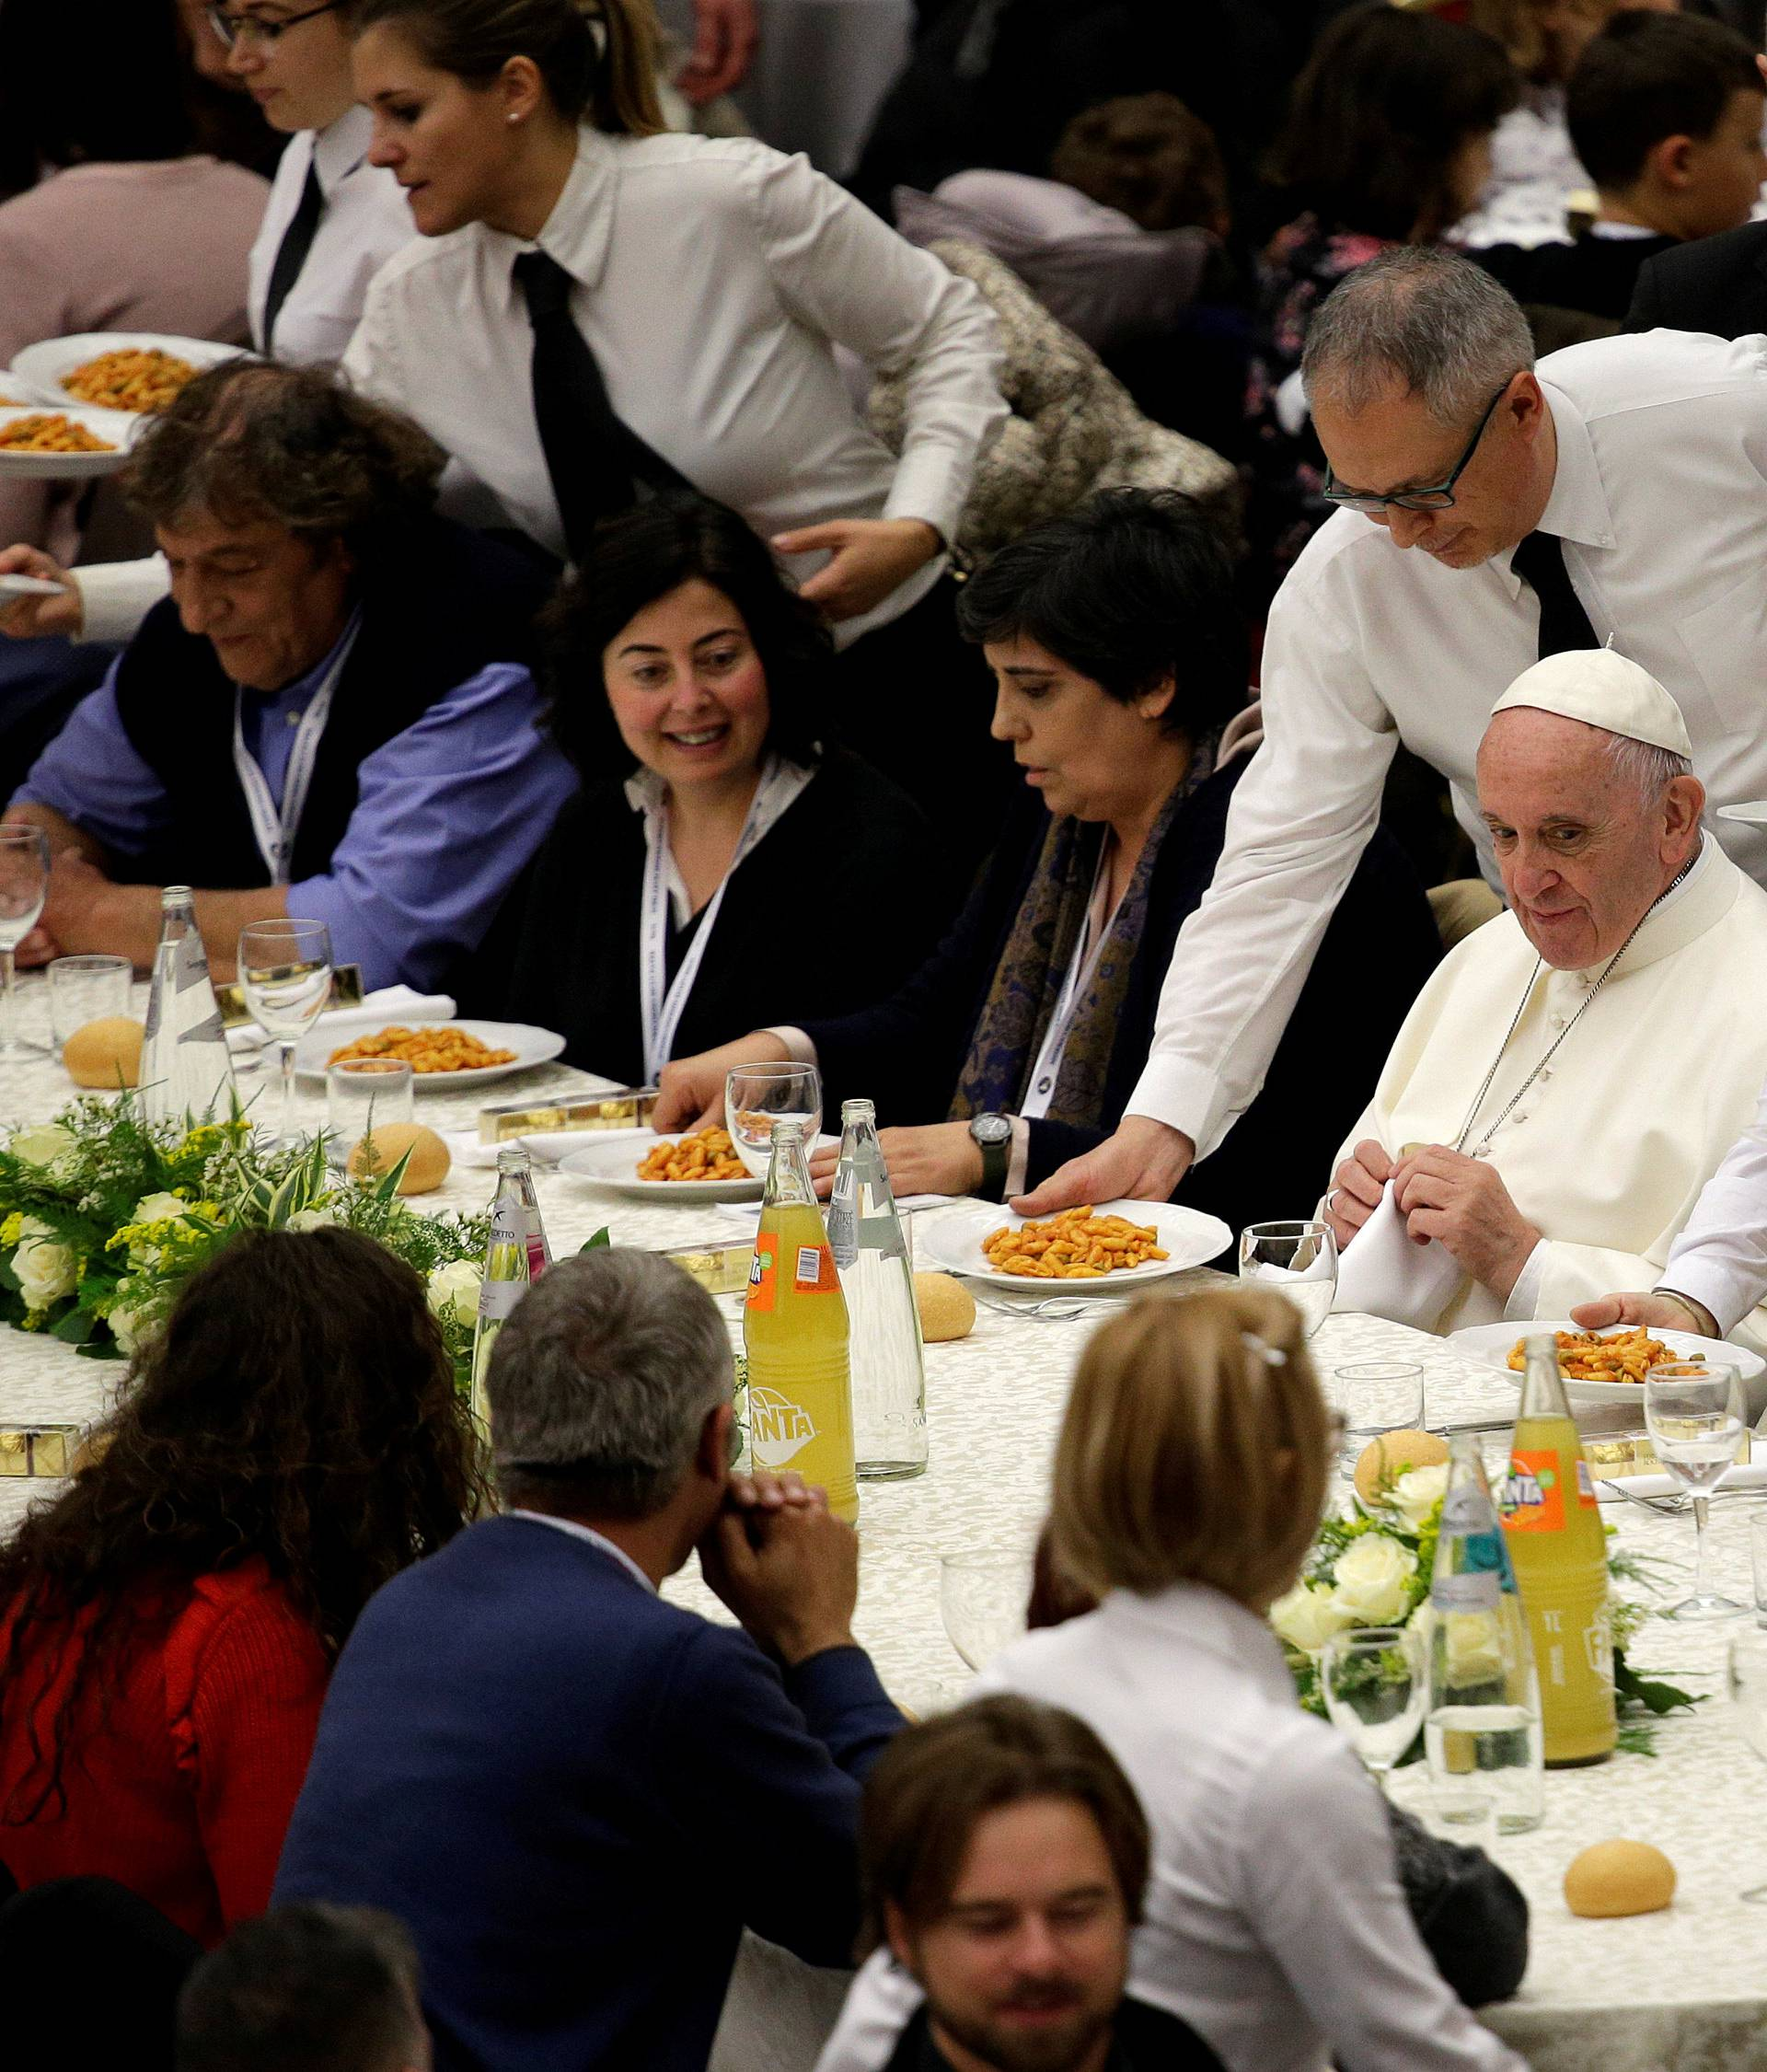 Pope Francis has lunch with the poor following a special mass to mark the new World Day of the Poor in Paul VI's hall at the Vatican